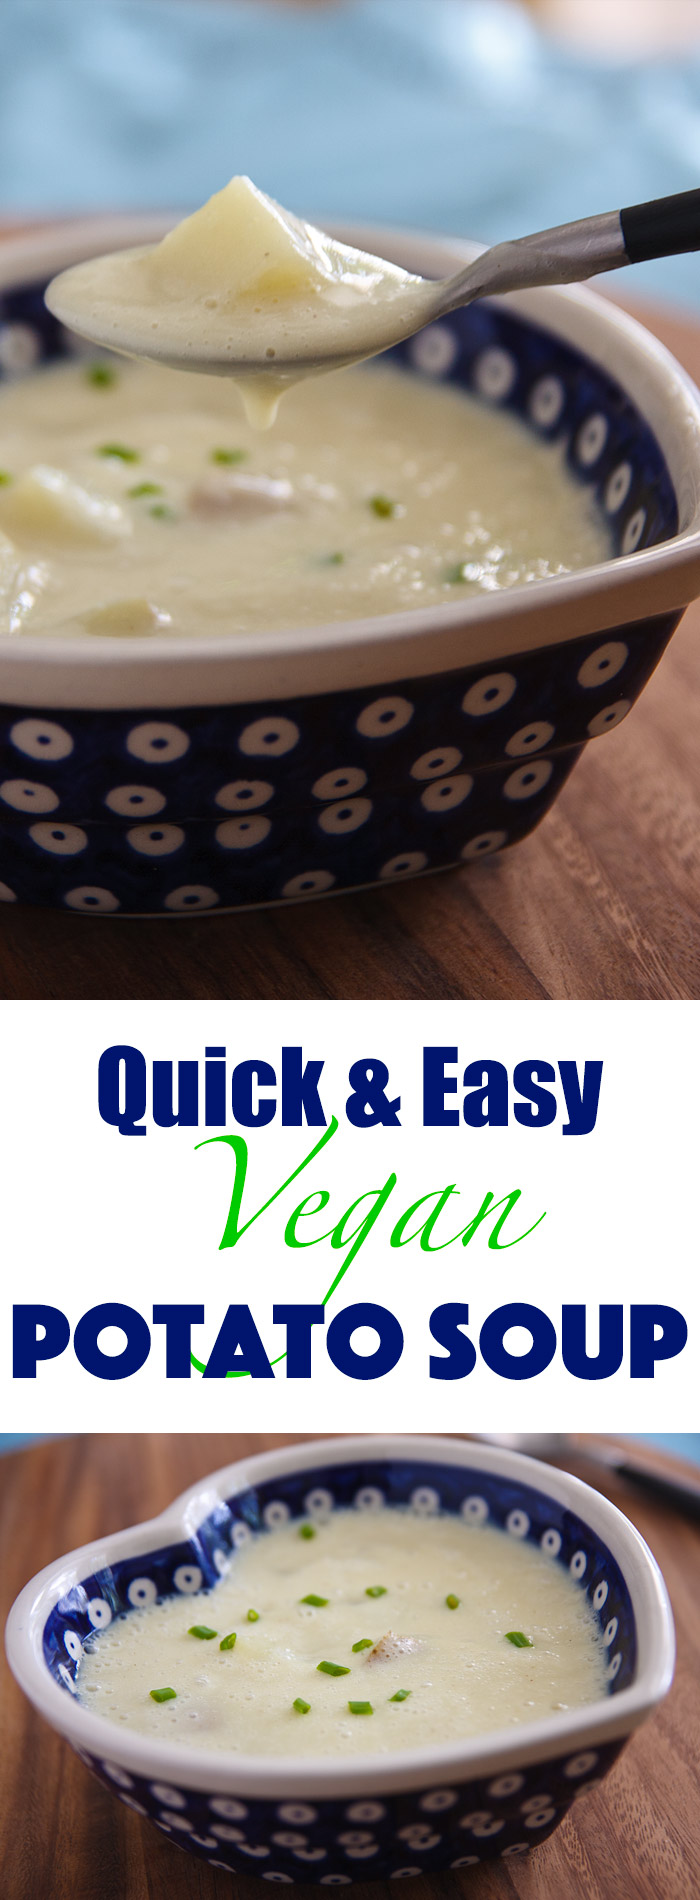 Quick And Easy Potato Soup Recipe From Fatfree Vegan Kitchen